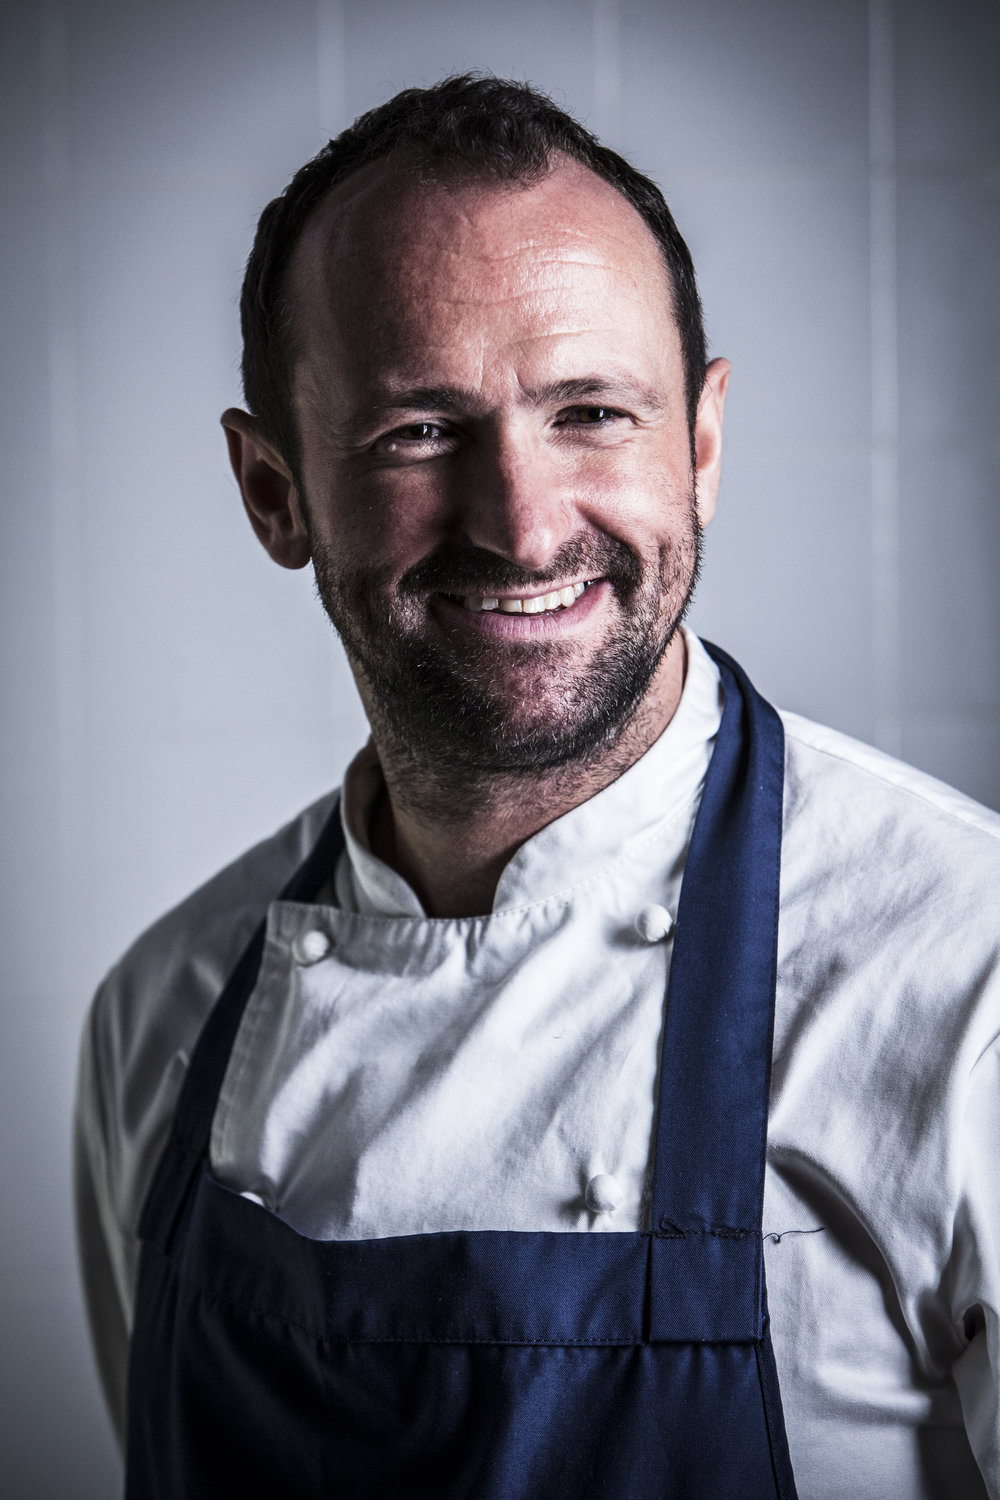 Chef Patron Daniel Smith